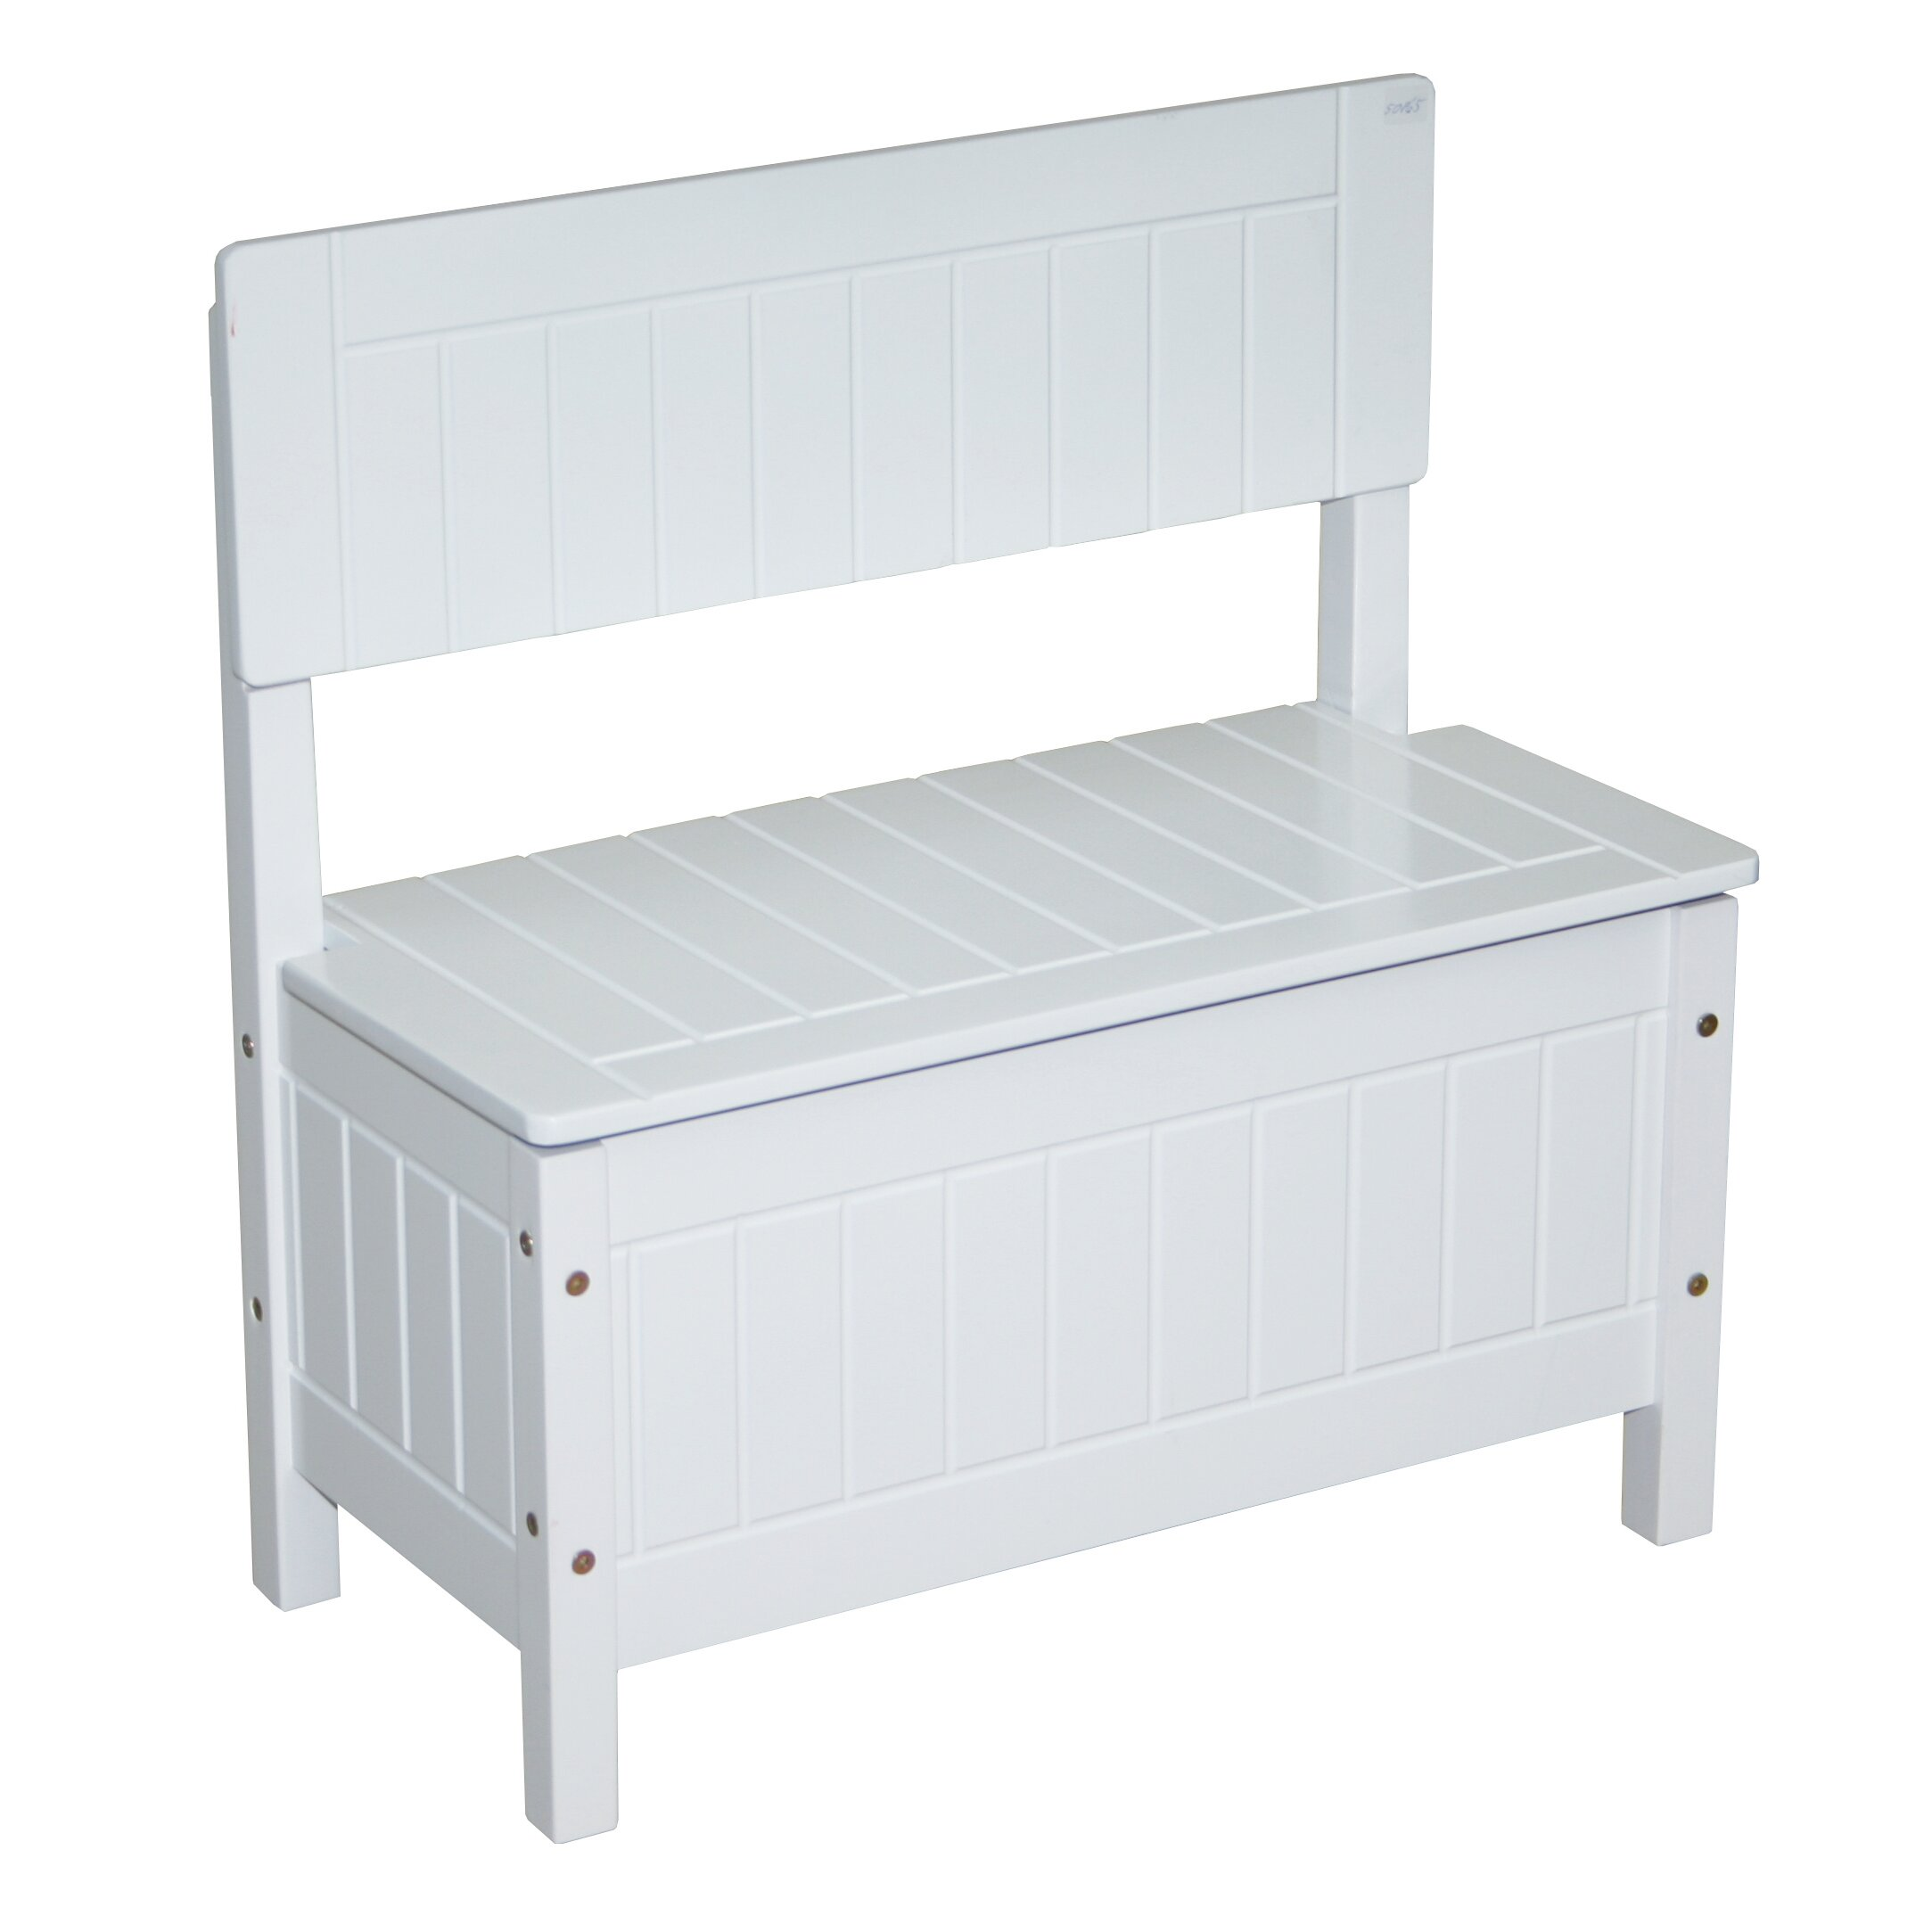 Roba Toy Storage Bench Reviews Wayfair Uk